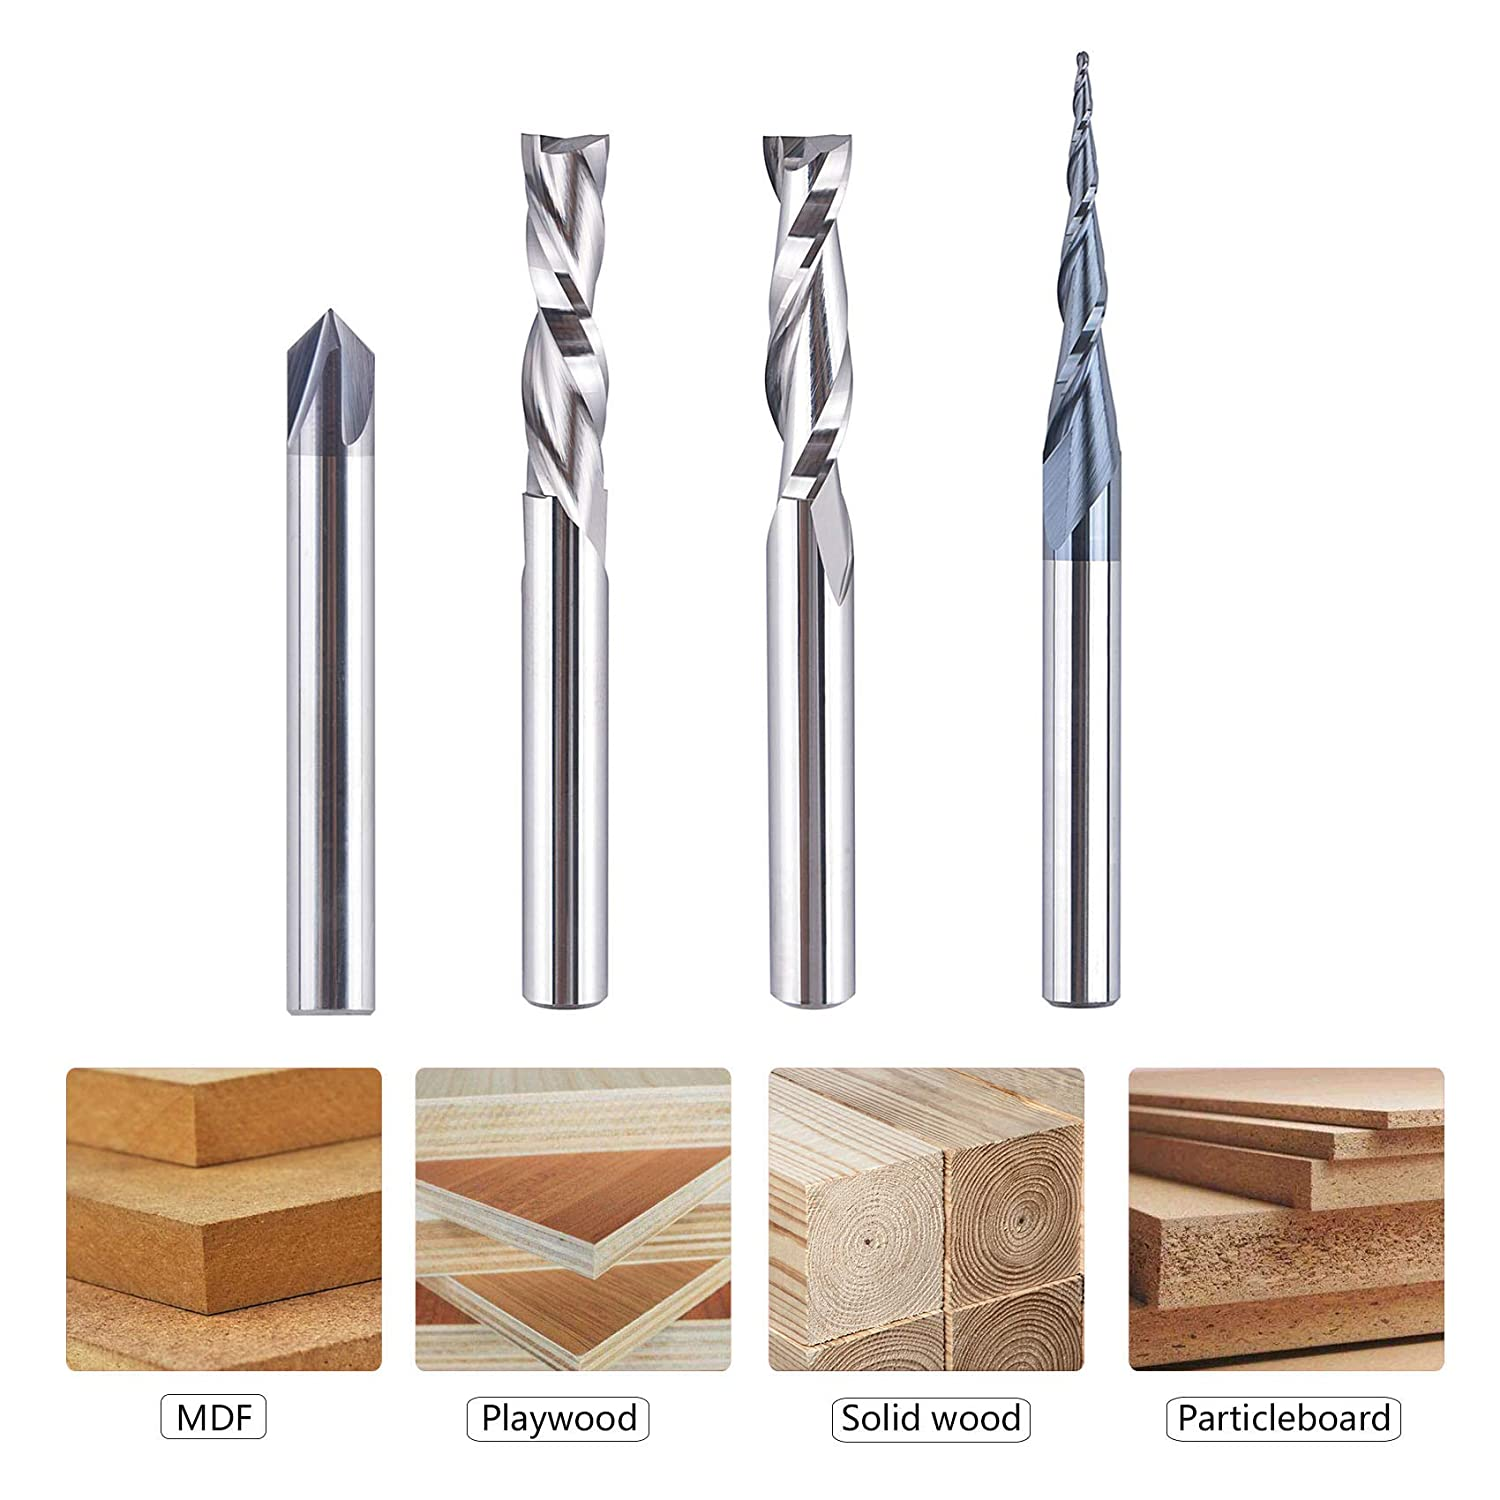 SpeTool CNC Router Bits Carving 8 Pcs Set for Wood Detail Profile V Groove Engraving Solid Carbide 1//4 Inch Shank